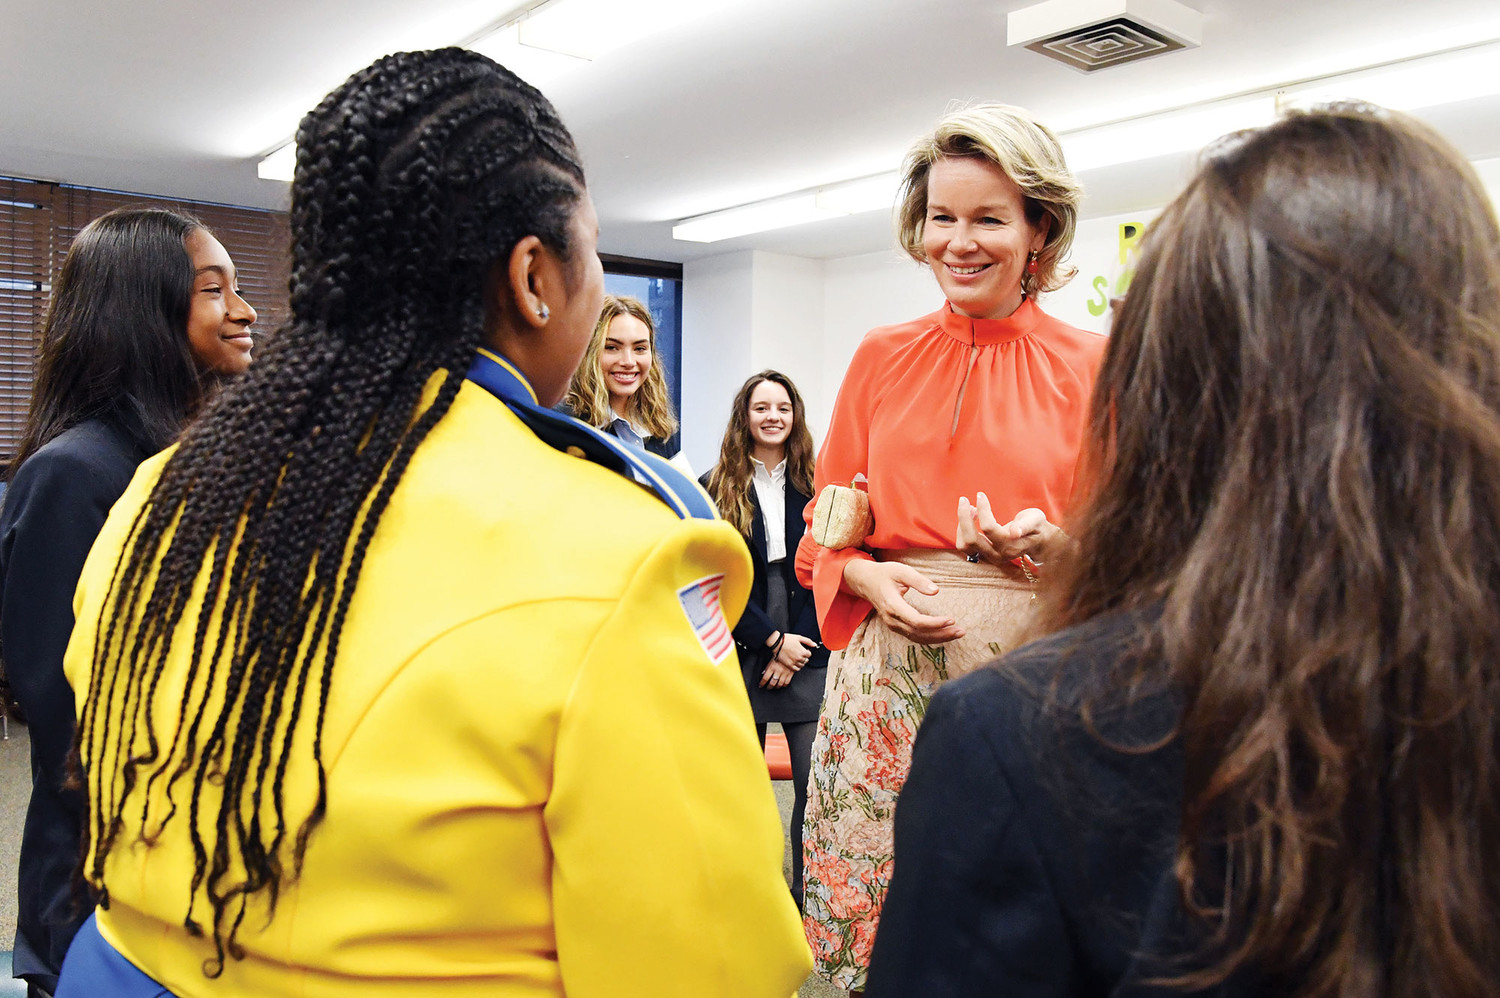 Queen Mathilde talks with the students, who were selected to meet with her in a classroom.